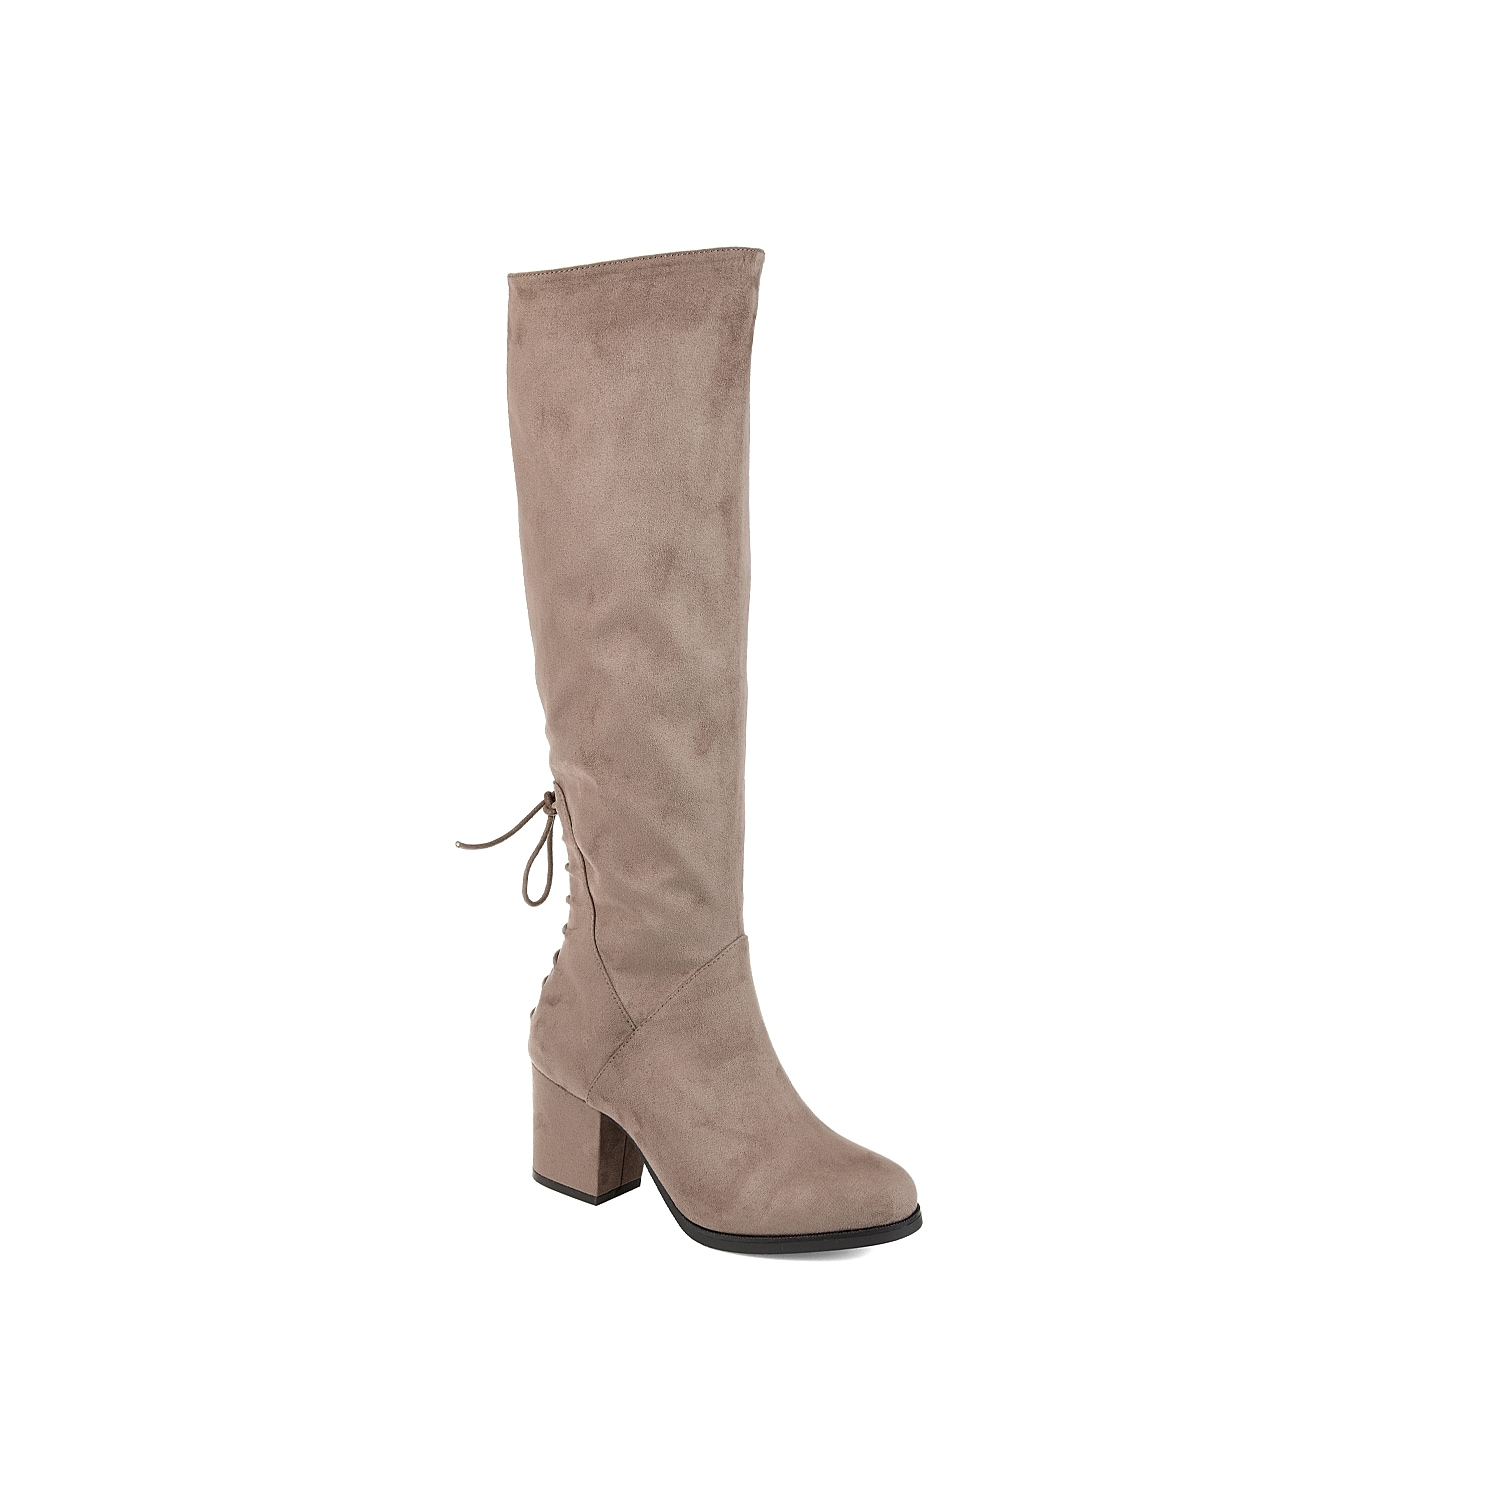 The Leeda boot from Journee Collection will change up your everyday look. This silhouette features a tall shaft and a lace-up bow detail in the back for extra intrigue! Click here for Boot Measuring Guide.